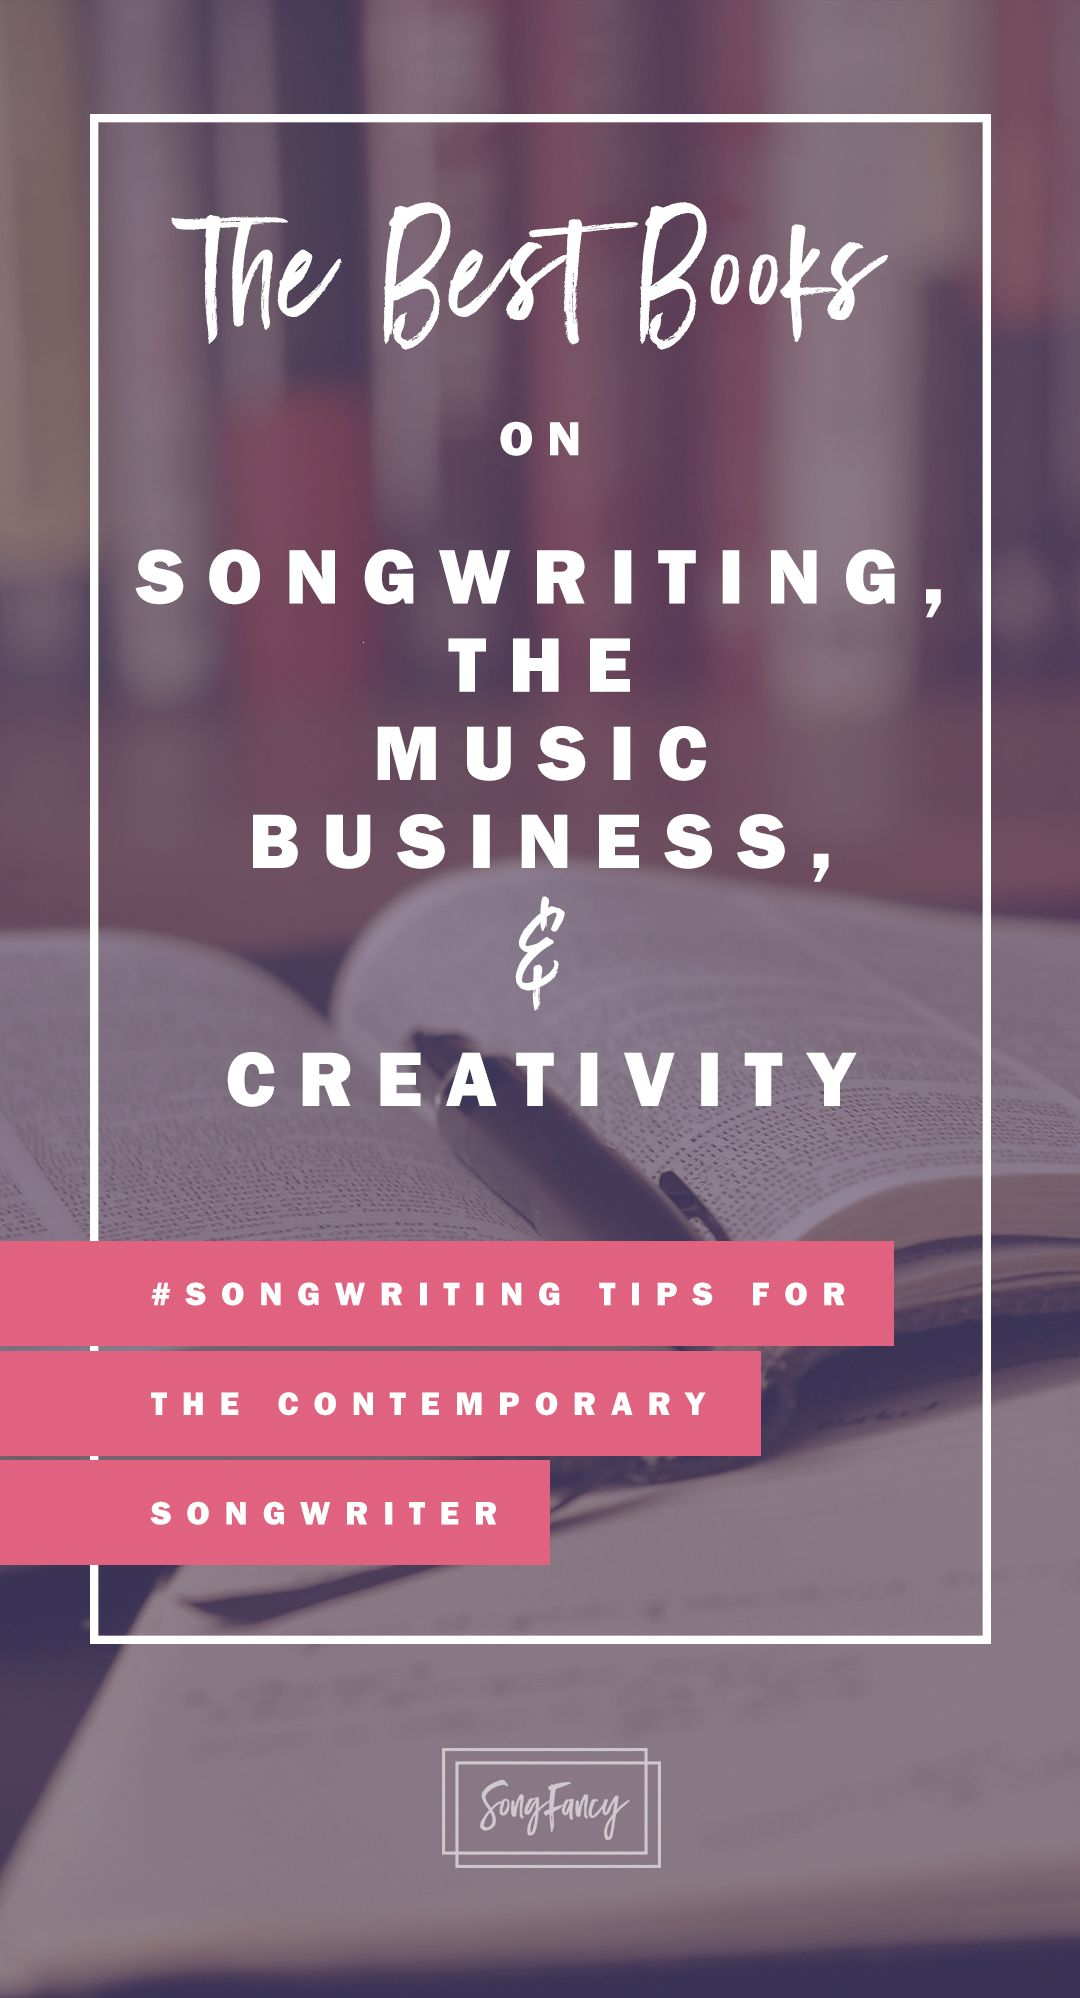 355845973a40d87bb529bd68bfeefbd1 - How To Get In The Music Industry As A Songwriter